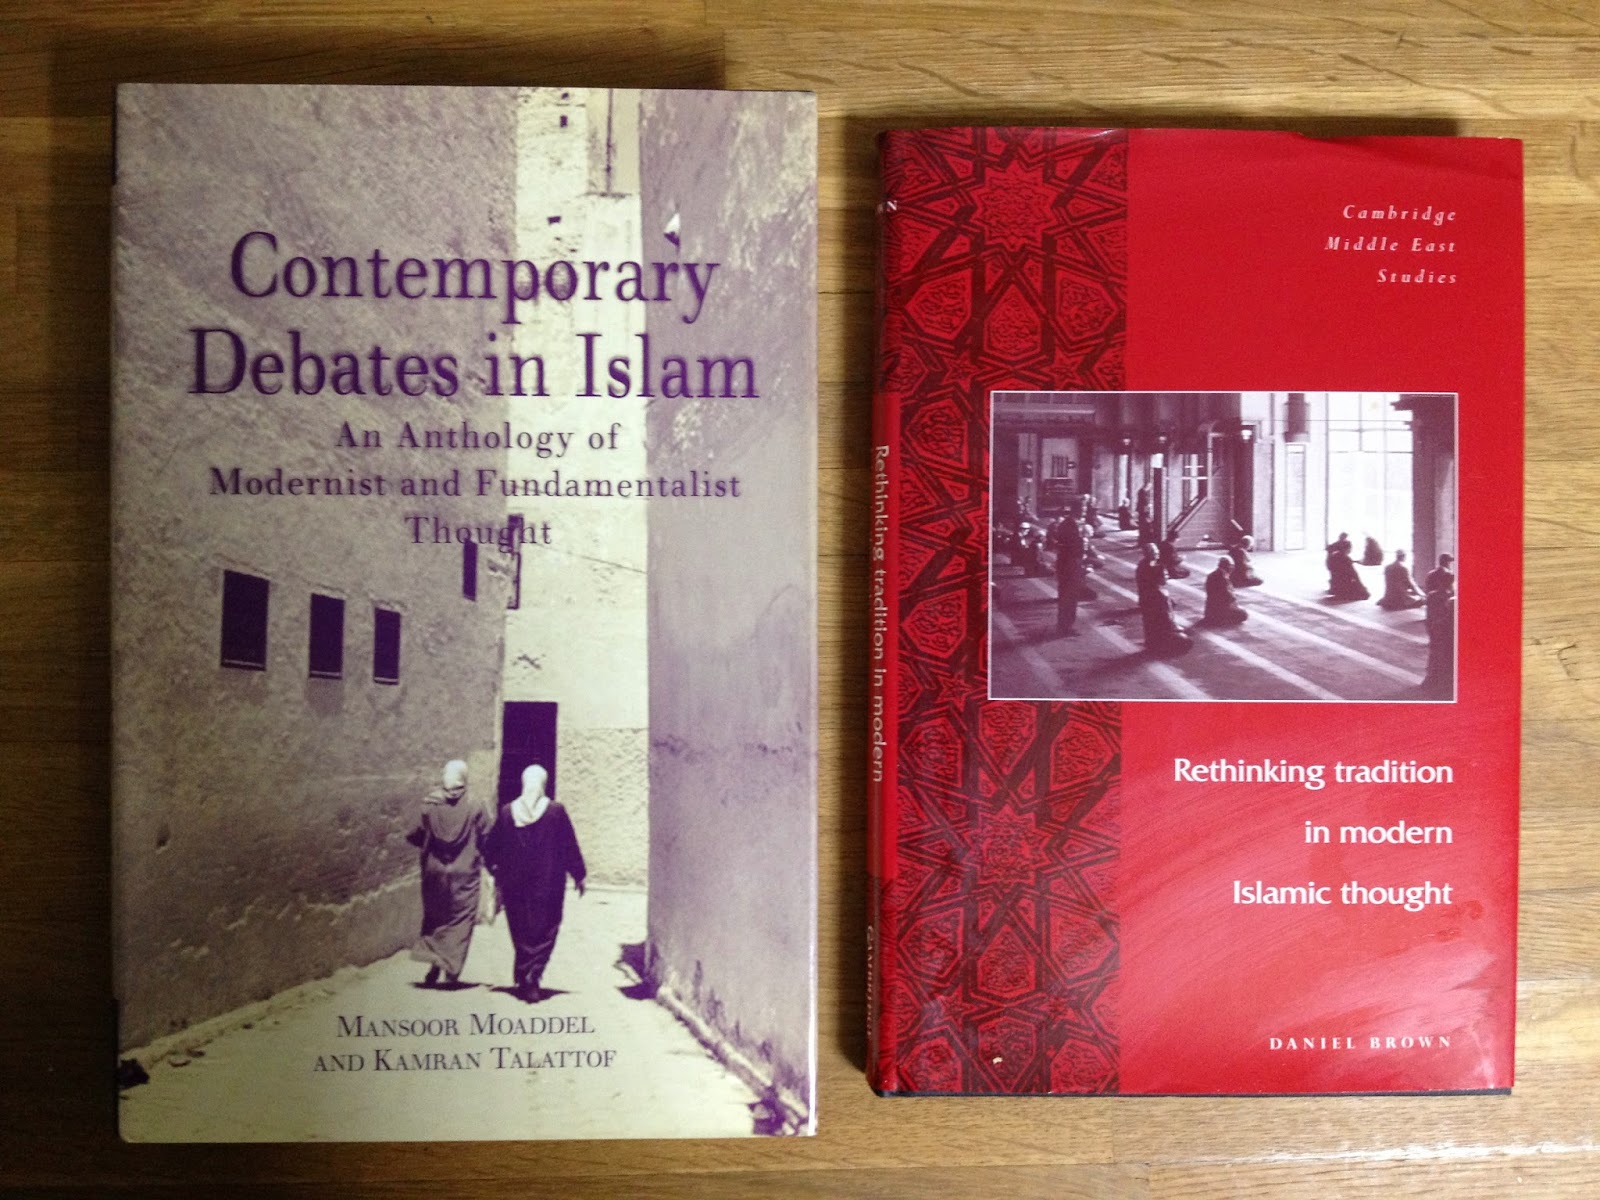 rethiking tradition in modern islamic thougt The book new thinking in islam: the jihad for democracy, freedom and  women's rights,  in rethinking islam, katajun amirpur argues that the west's  impression of islam as a  on the way to the modern the tradition of reform  islam  in the study of islam and the importance of the qur'an in modern islamic  thought.